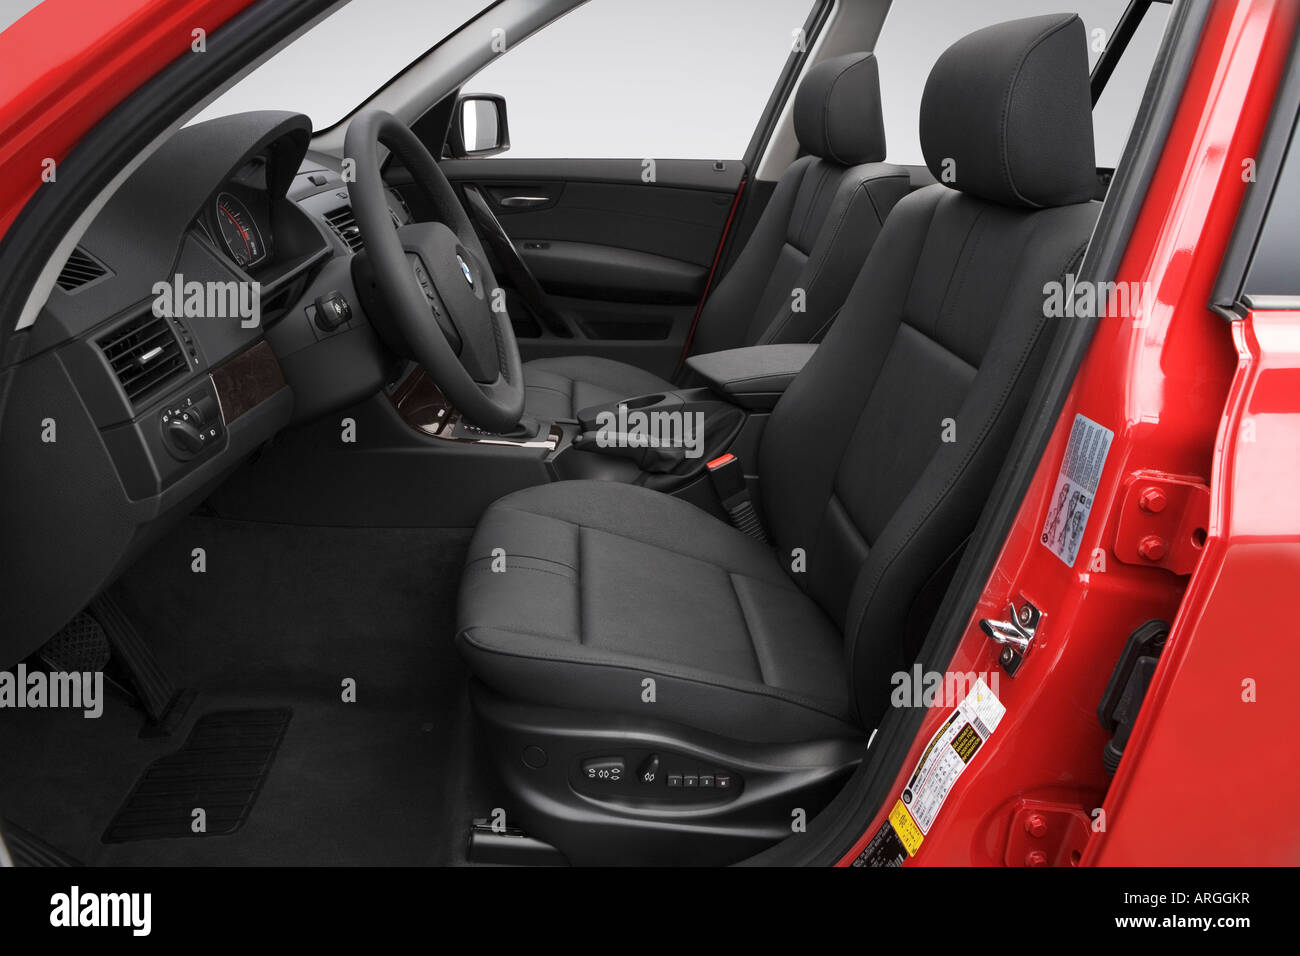 2007 Bmw X3 3 0si In Red Front Seats Stock Photo Alamy